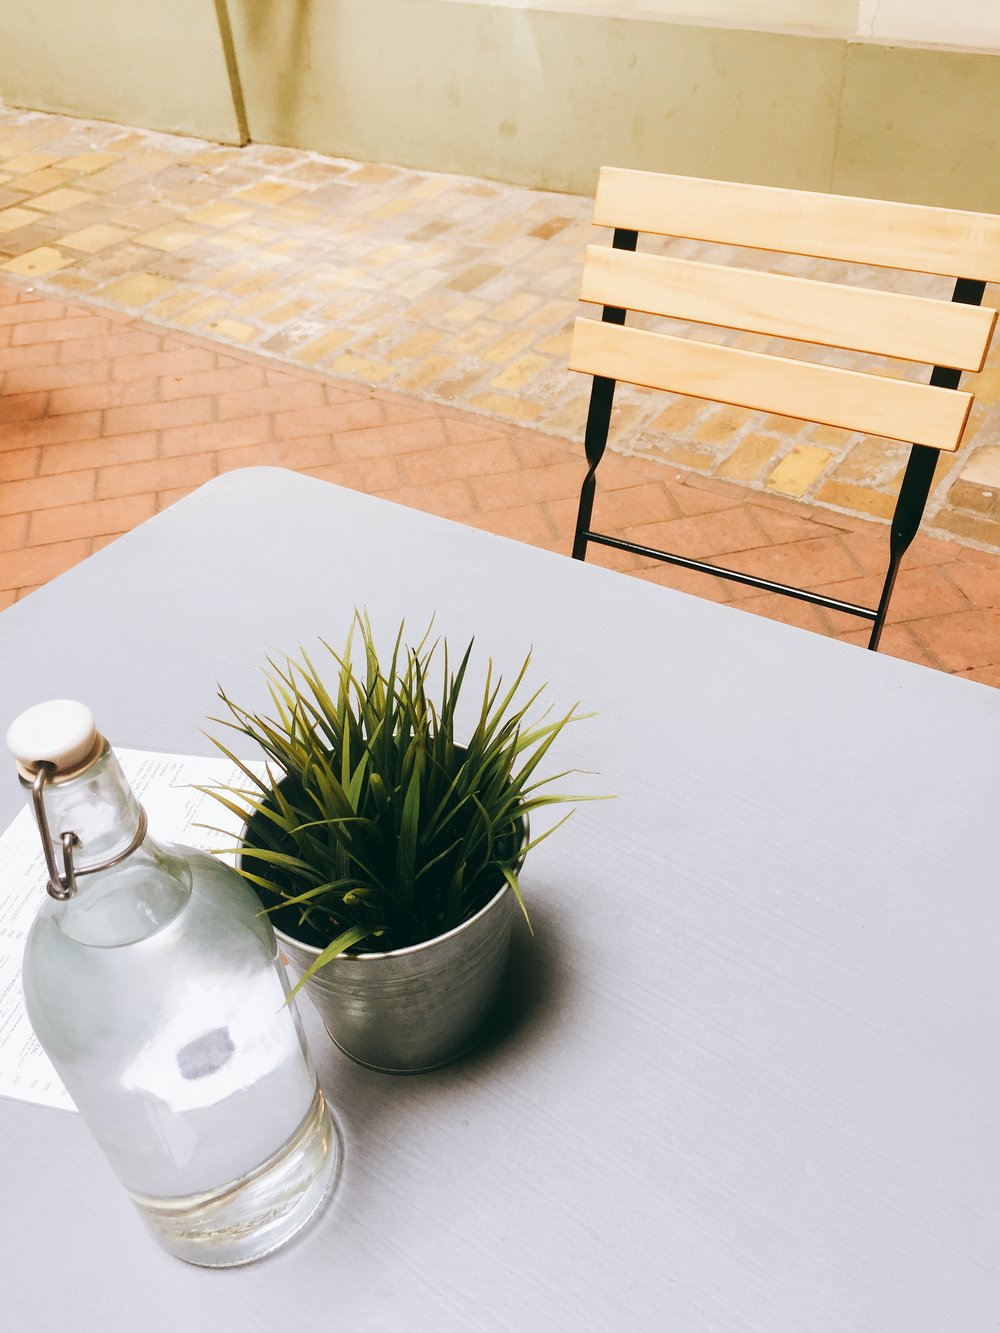 Fekete - Stumbled upon this little cafe with an open courtyard within a neoclassical building - minimalistic interior, Scandinavian vibe, airy space and grab a nitro cold brew on the go!